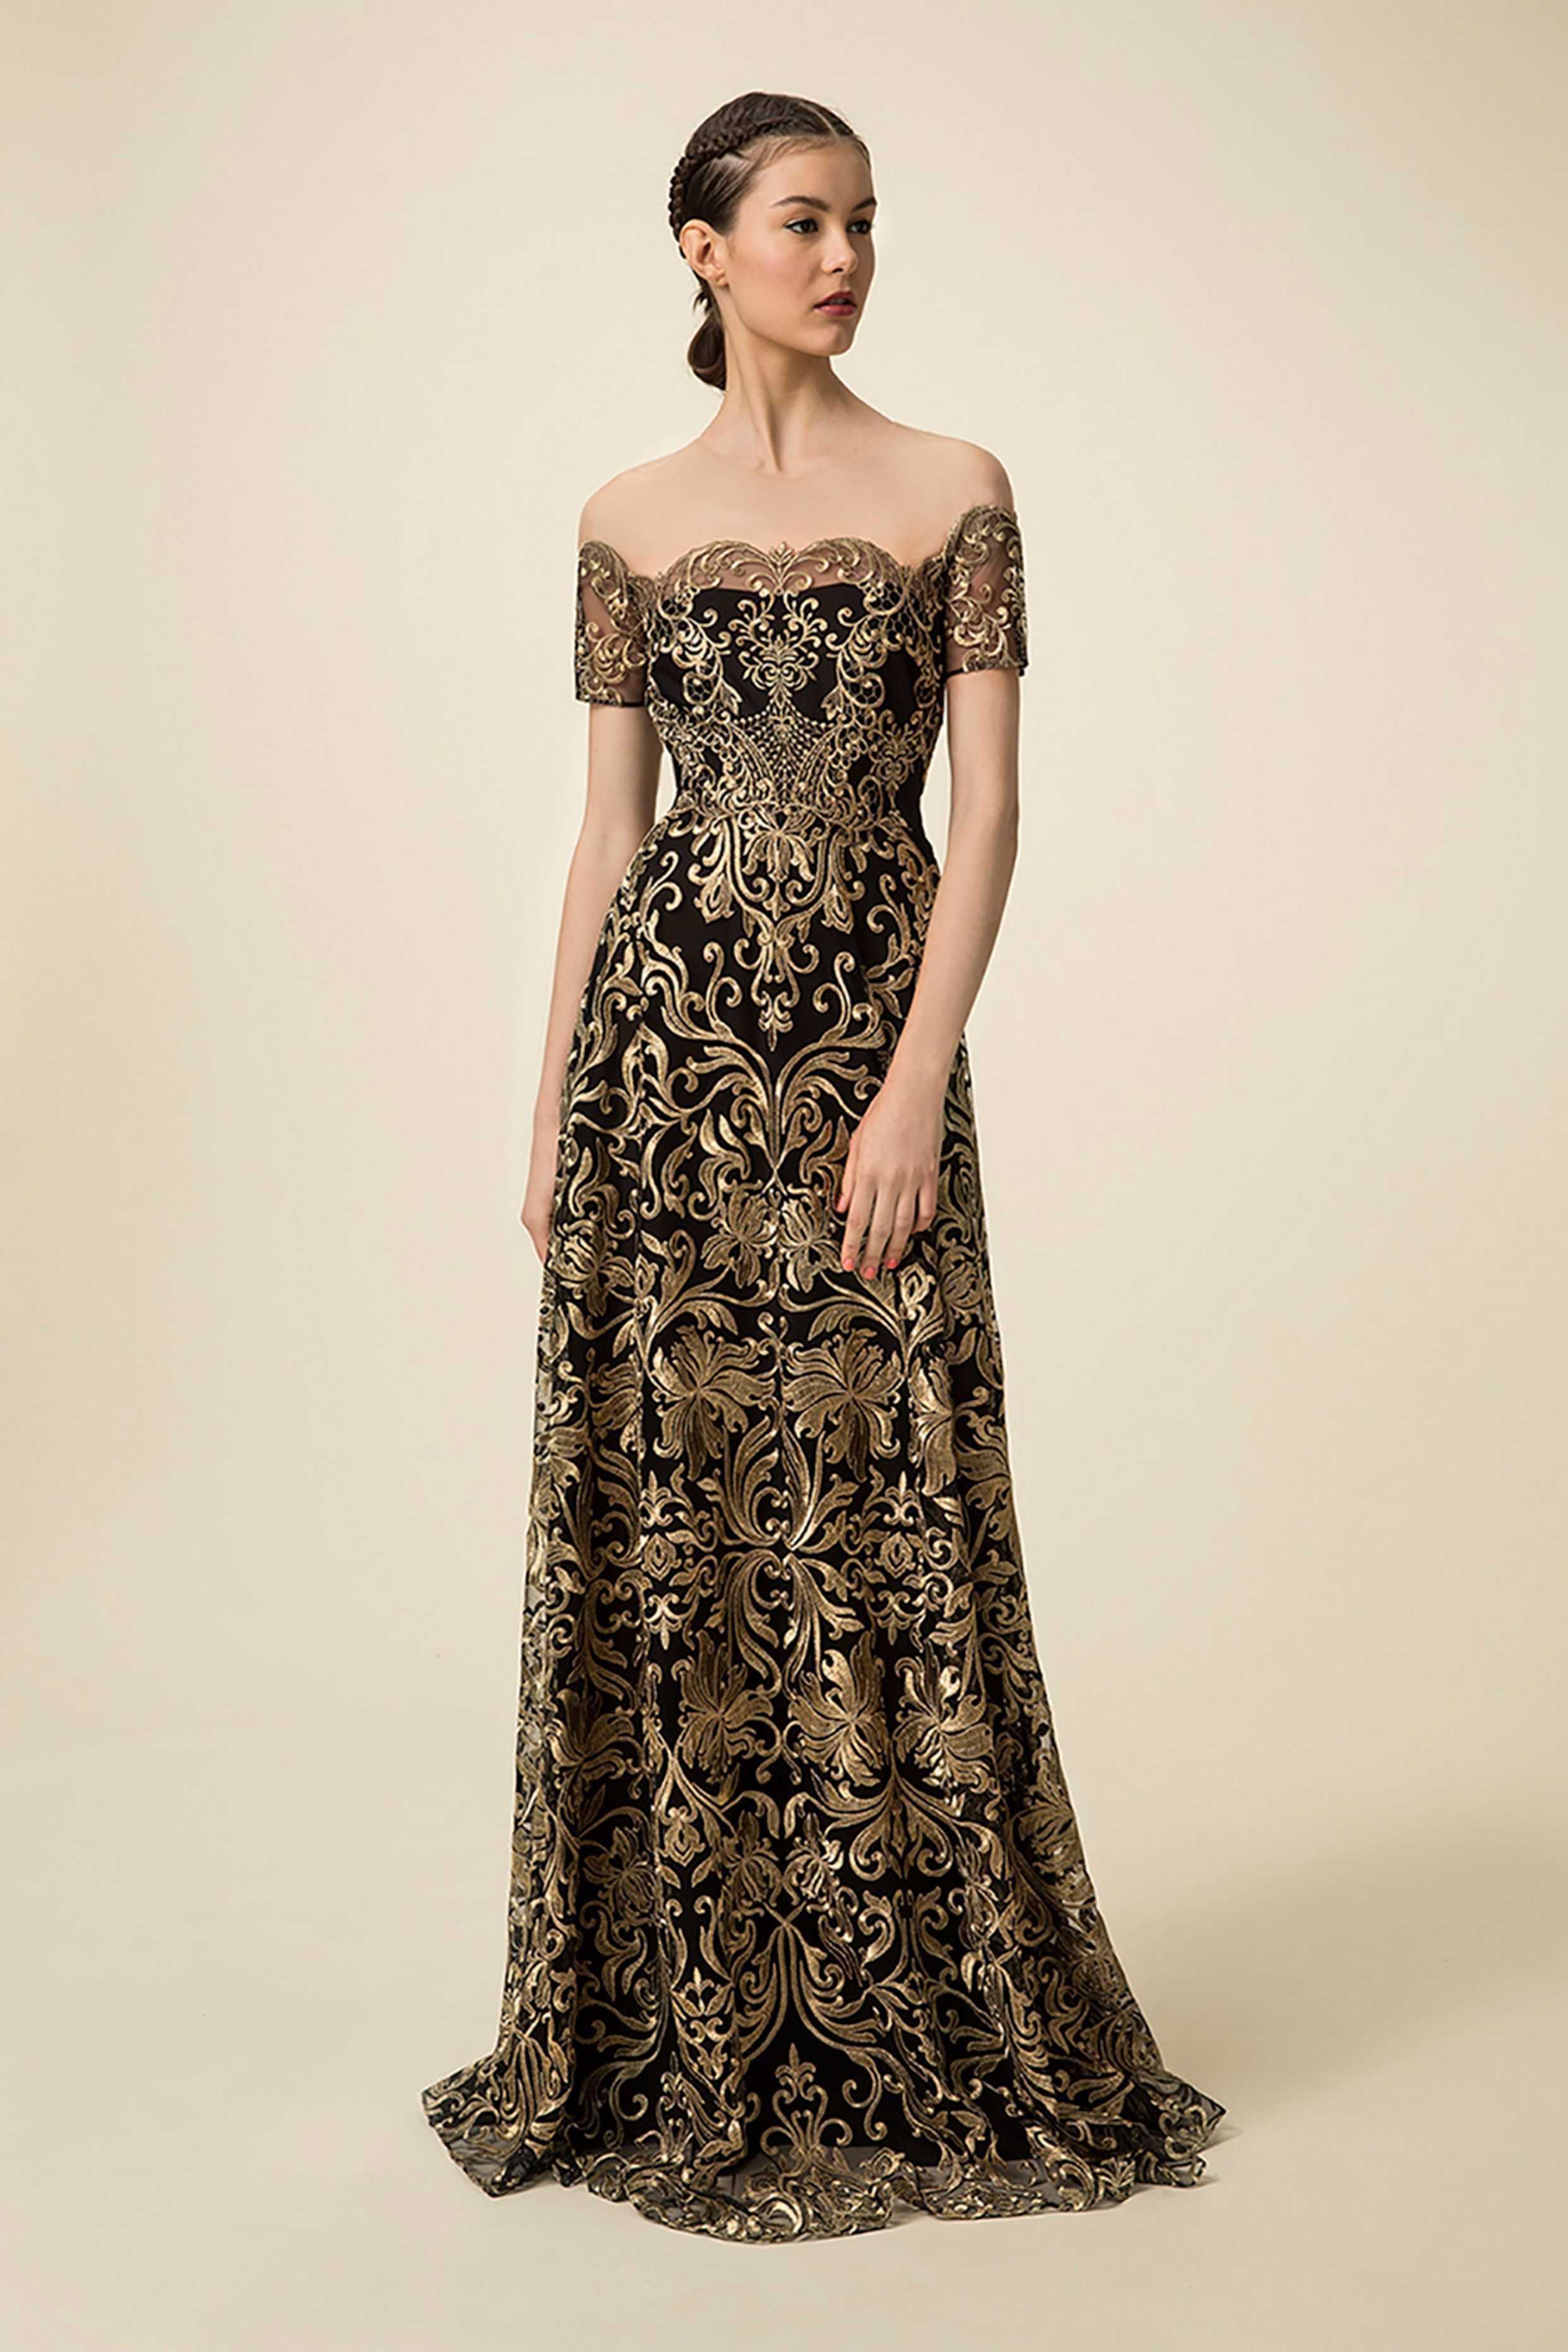 Notte by Marchesa Dresses